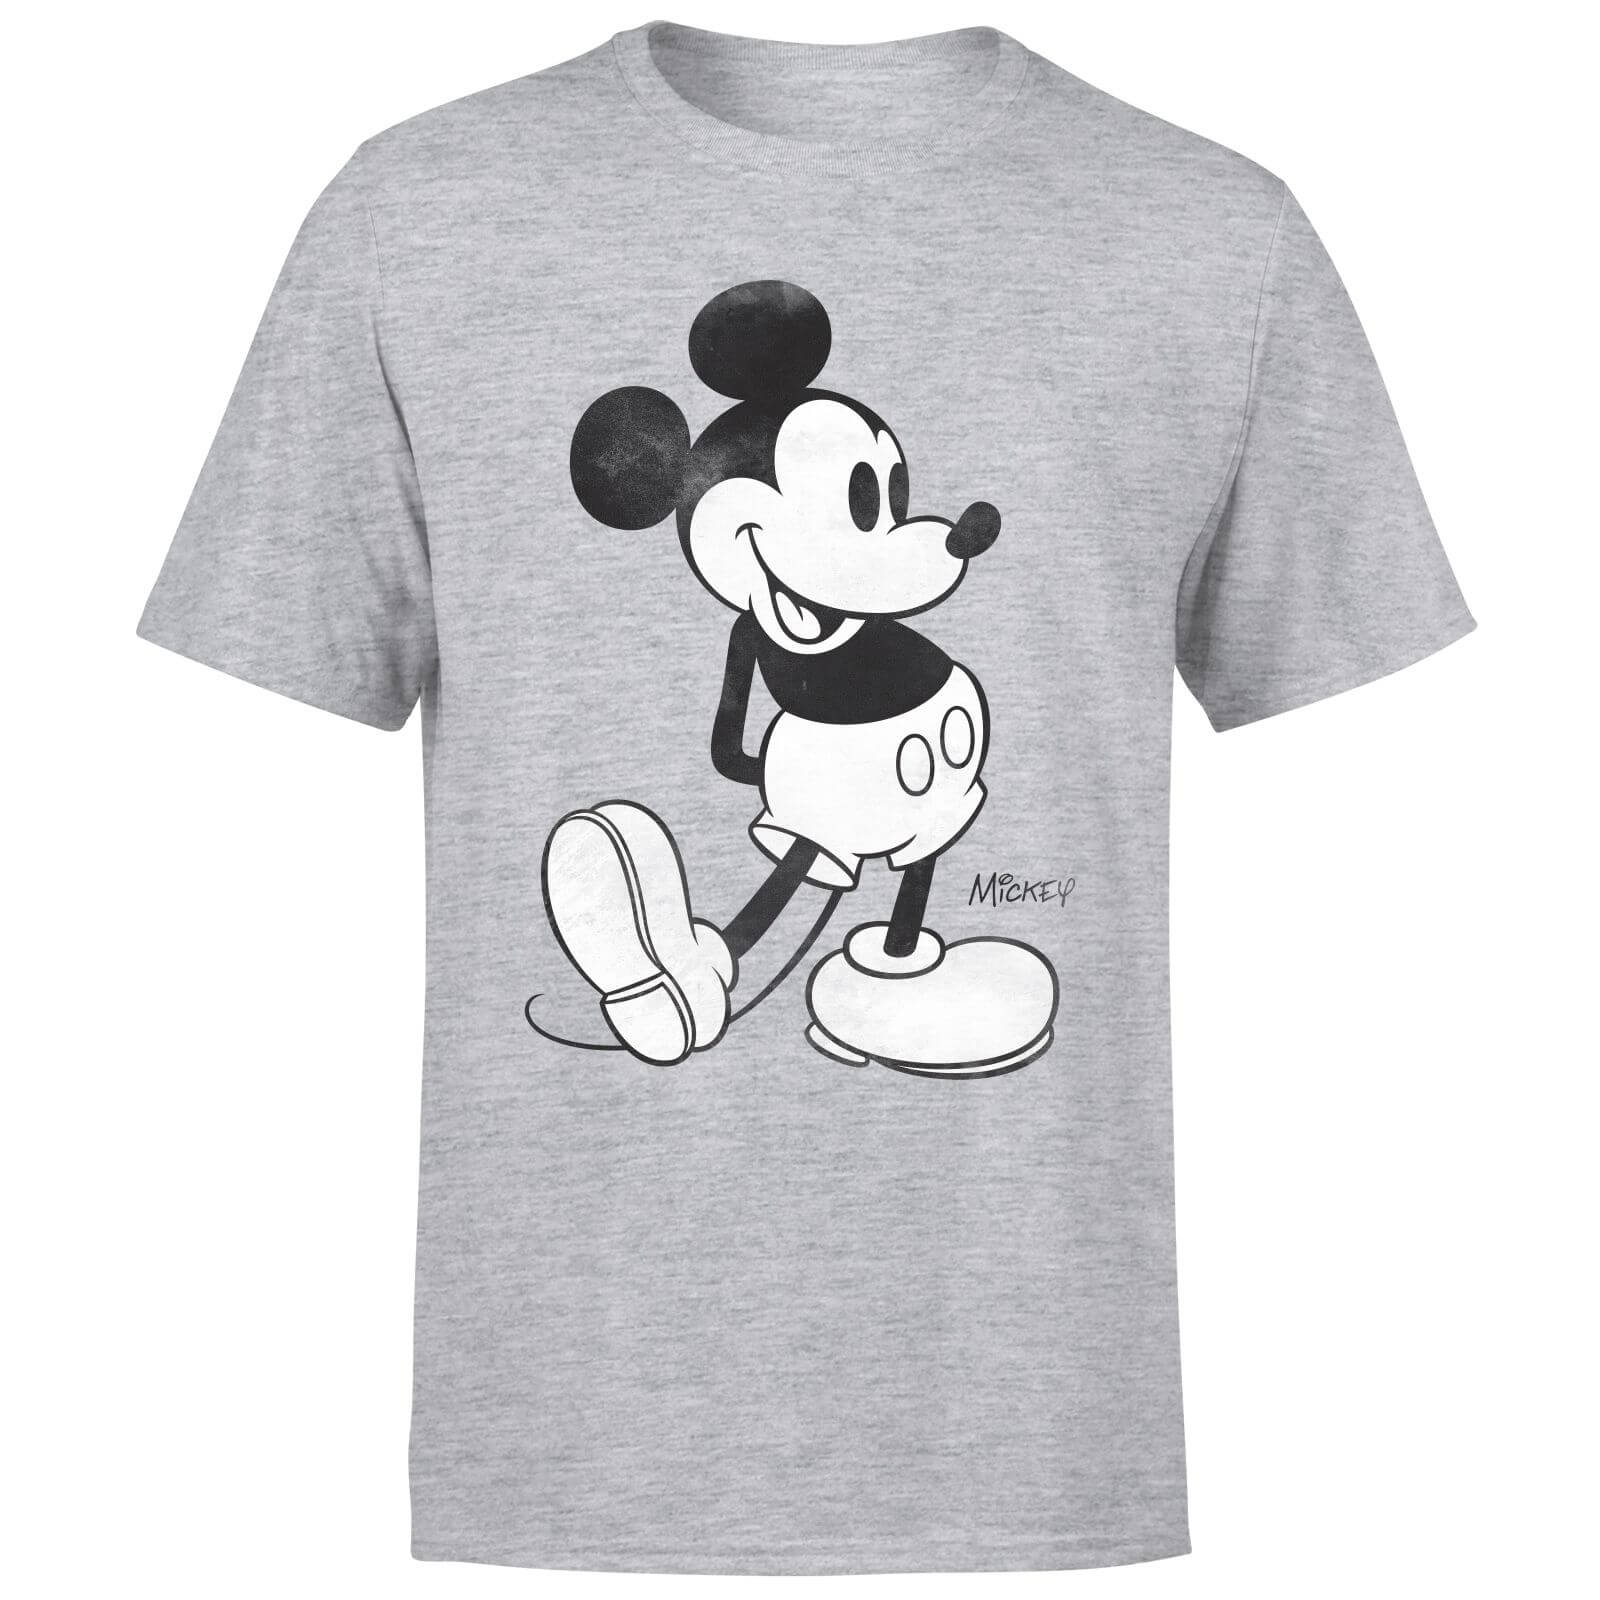 Disney Mickey Mouse Classic Kick B&W T-Shirt - Grey